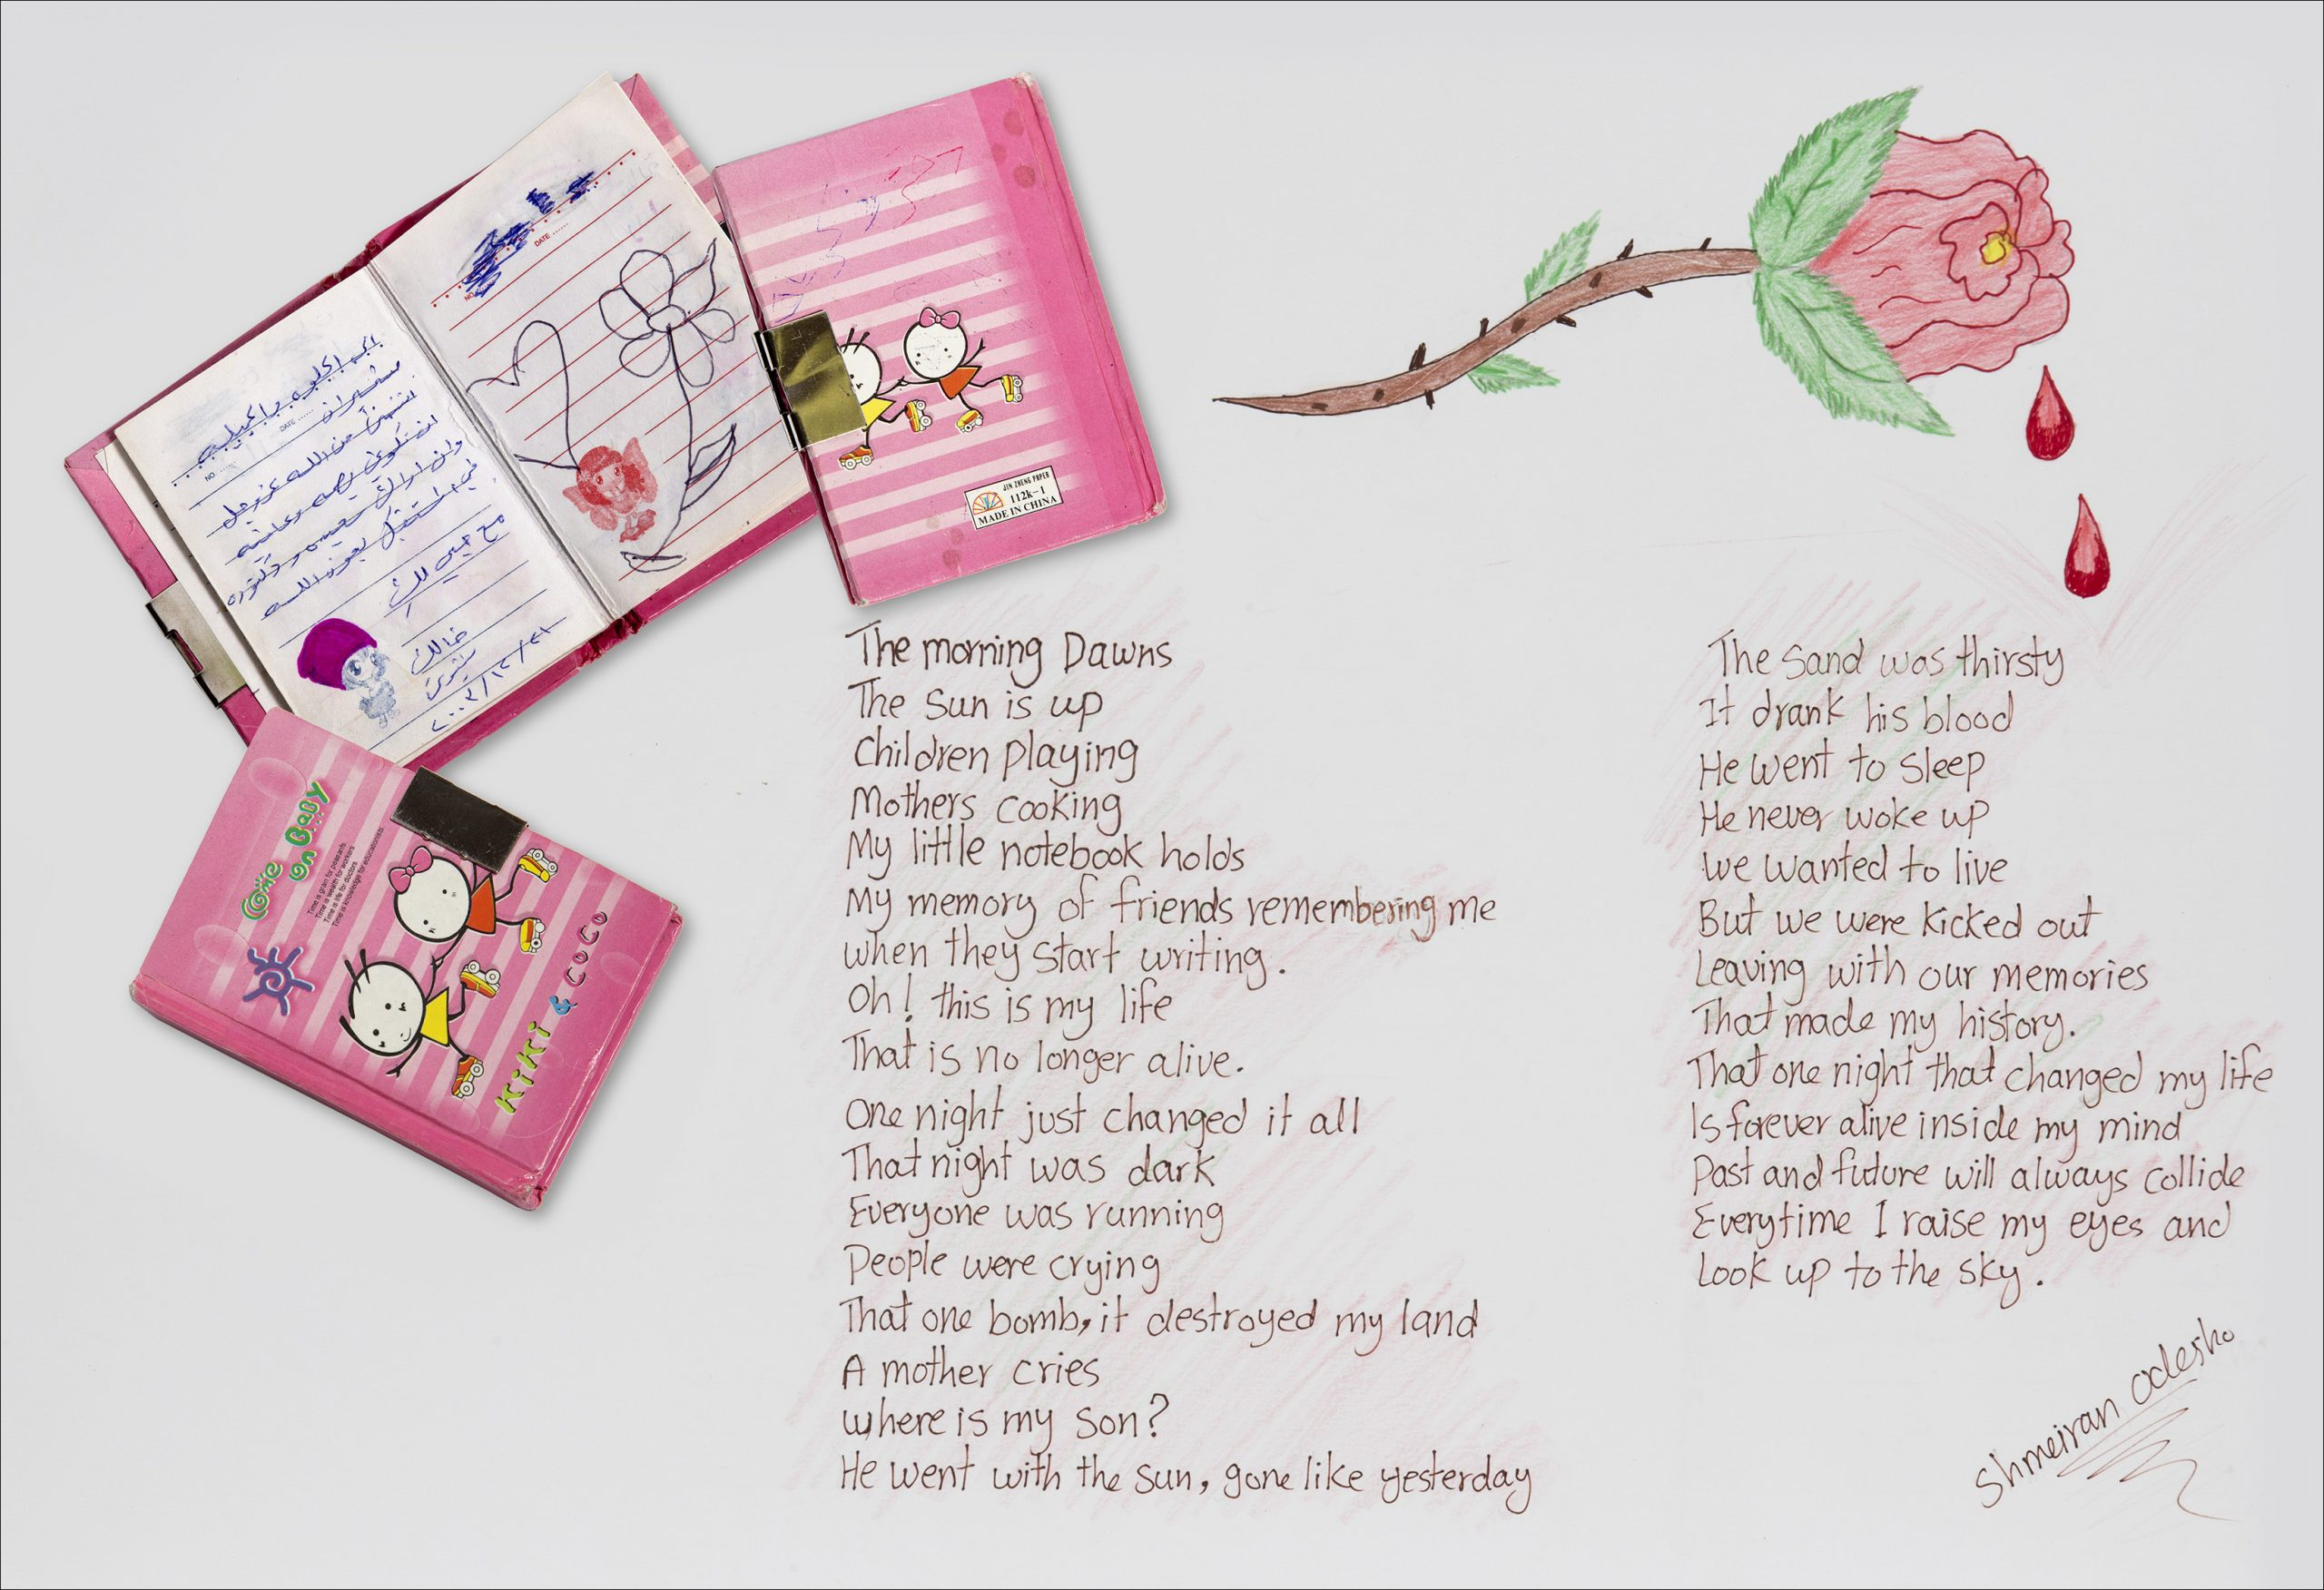 Schmeiran Oclesho's Hello Kitty notebook with messages from her friends